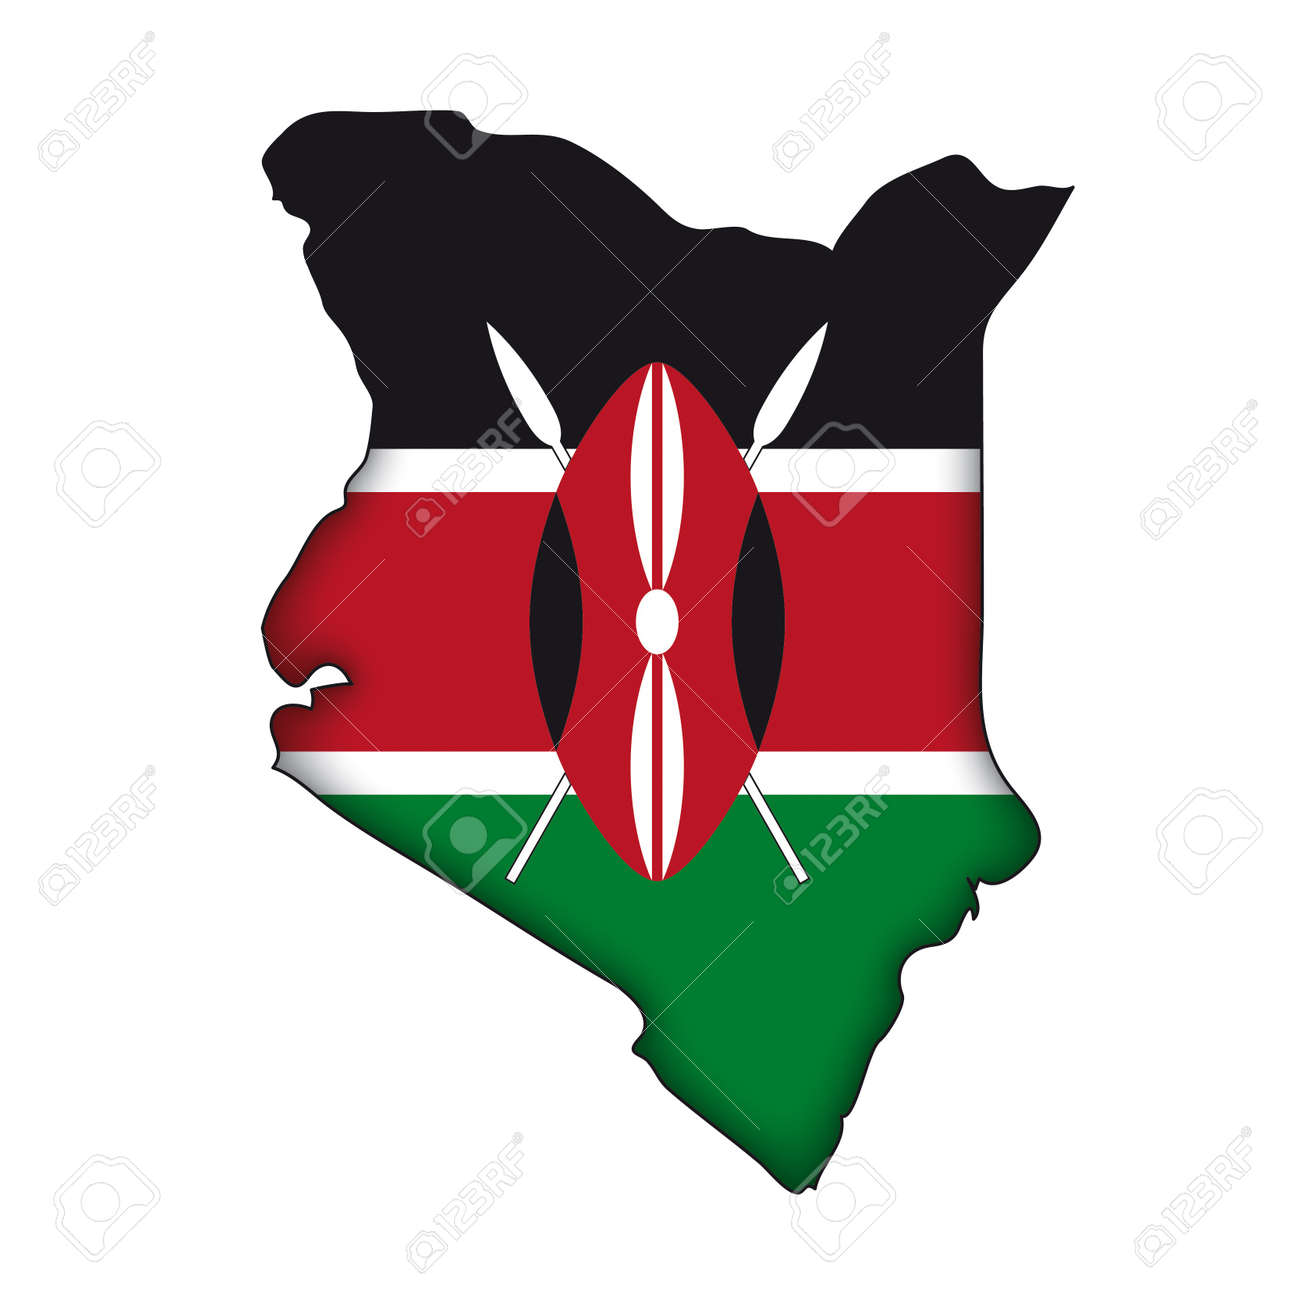 map flag Kenya Kenya Flag Map on kenya police map, kenya road map, kenya citizen-news, kenya on map, uganda map, kenya men, kenya ladies, kenya native animals, kenya media gossip, kenya map map, kenya ethnic groups map, kenya people maasai, kenya globe map, ghana map, kenya heart map, kenya country map,